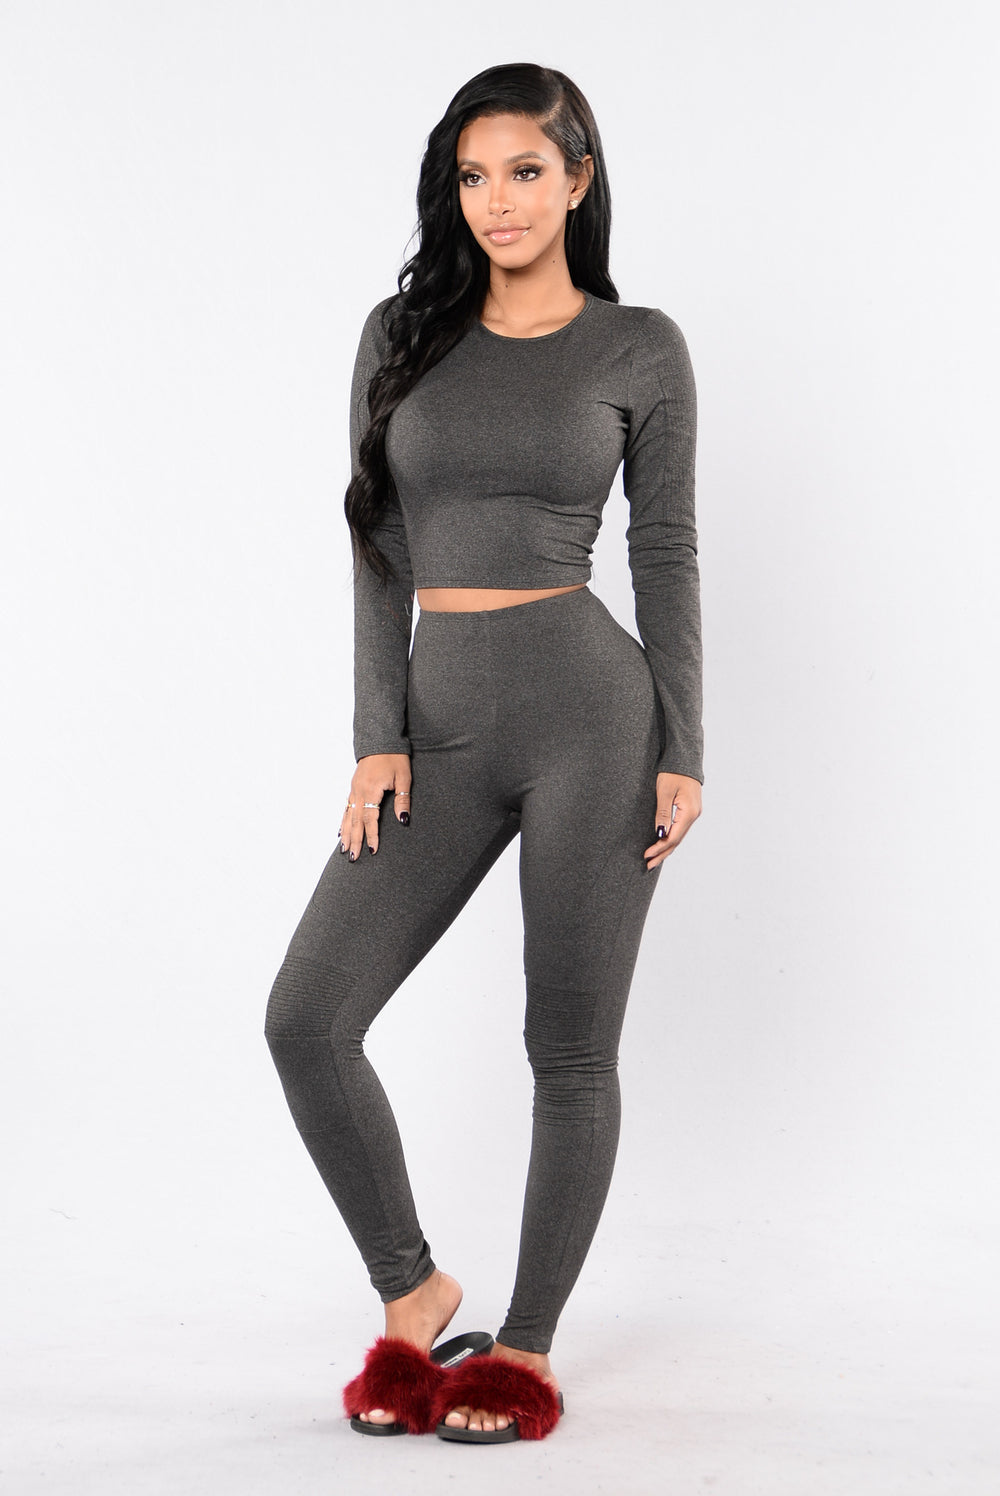 Maxin' Relaxin' Top - Charcoal